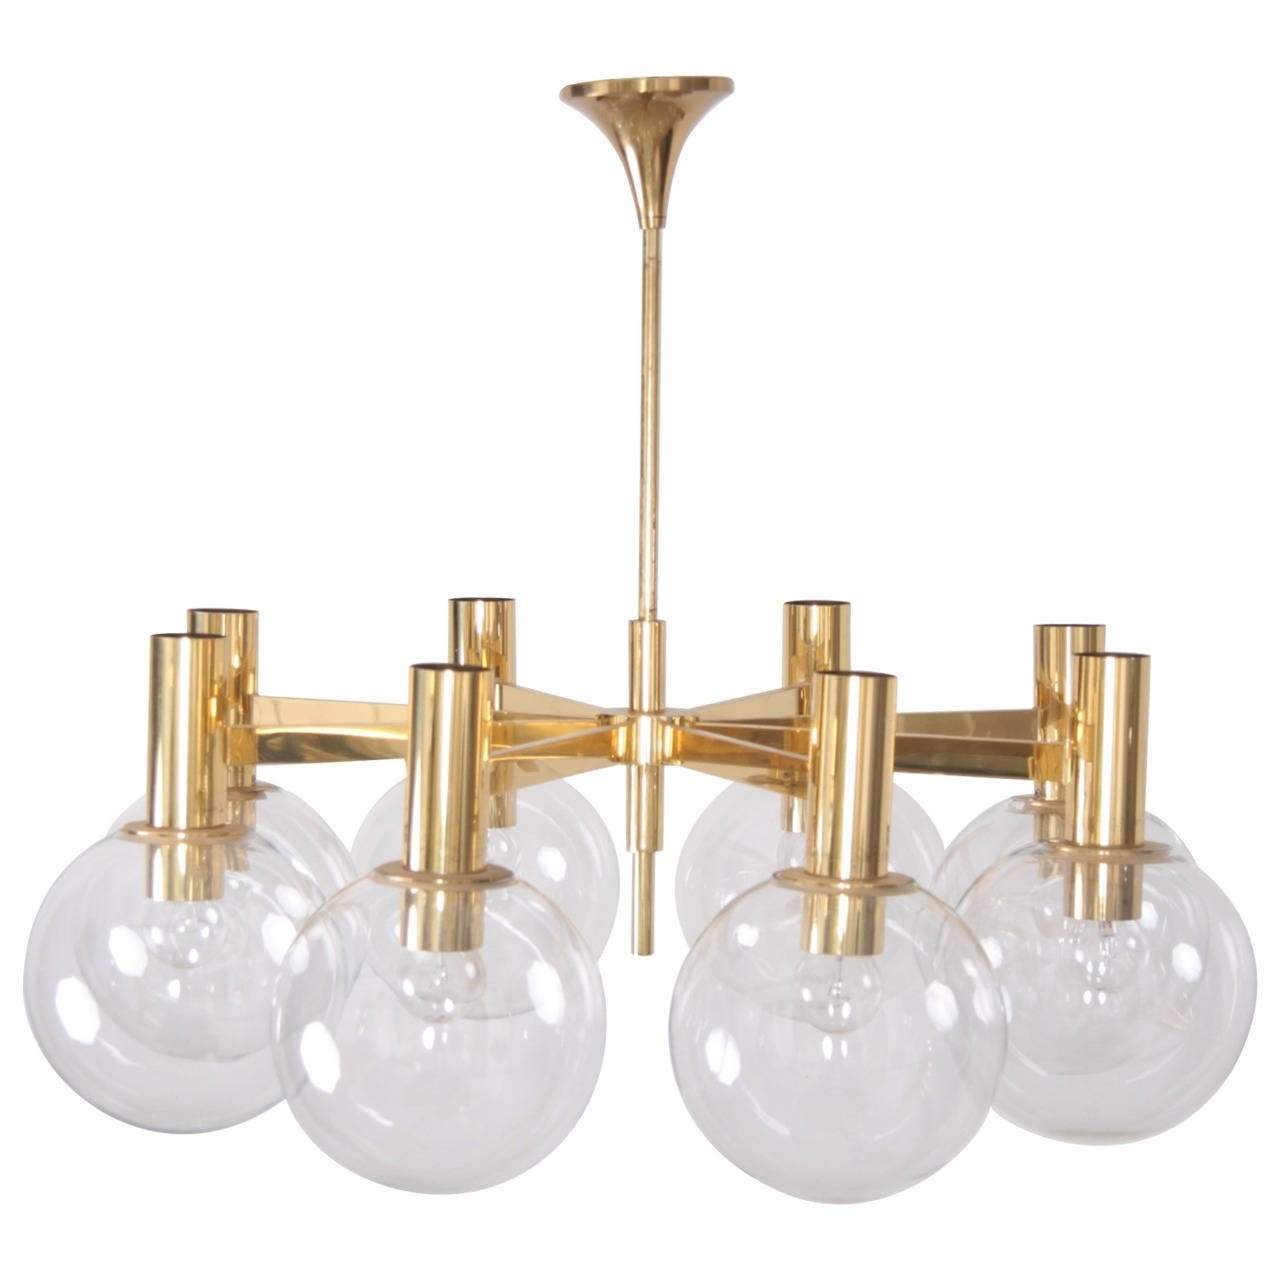 Extra Large Brass Chandelier With Eight Armsott International Within Popular Large Brass Chandelier (View 10 of 15)